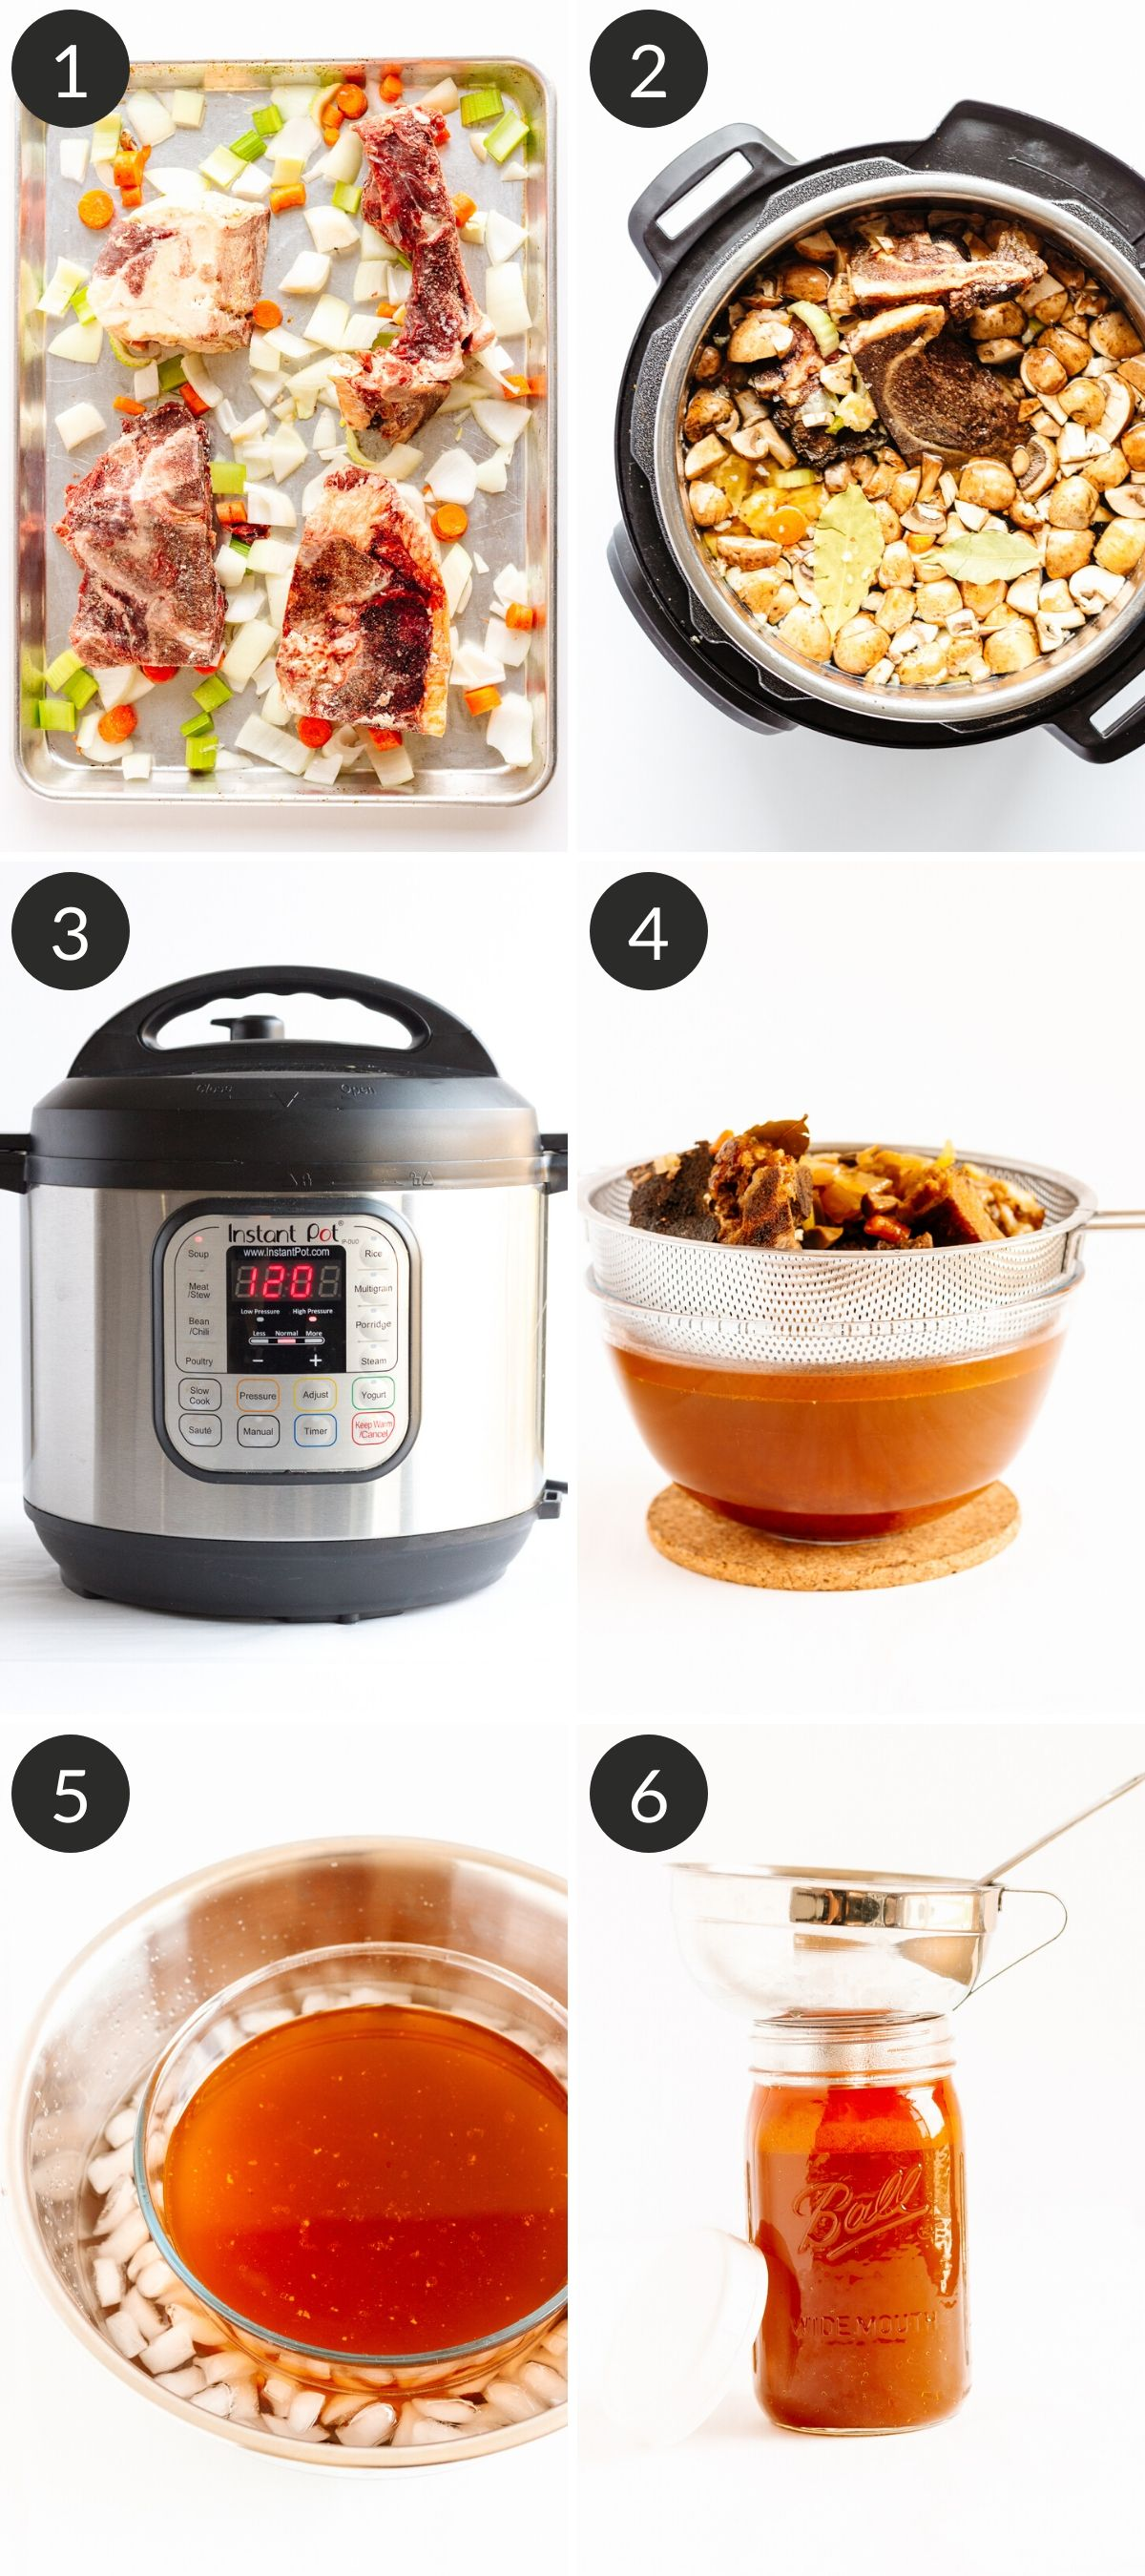 Photo collage showing step by step details of making beef bone broth or stock in the Instant Pot.